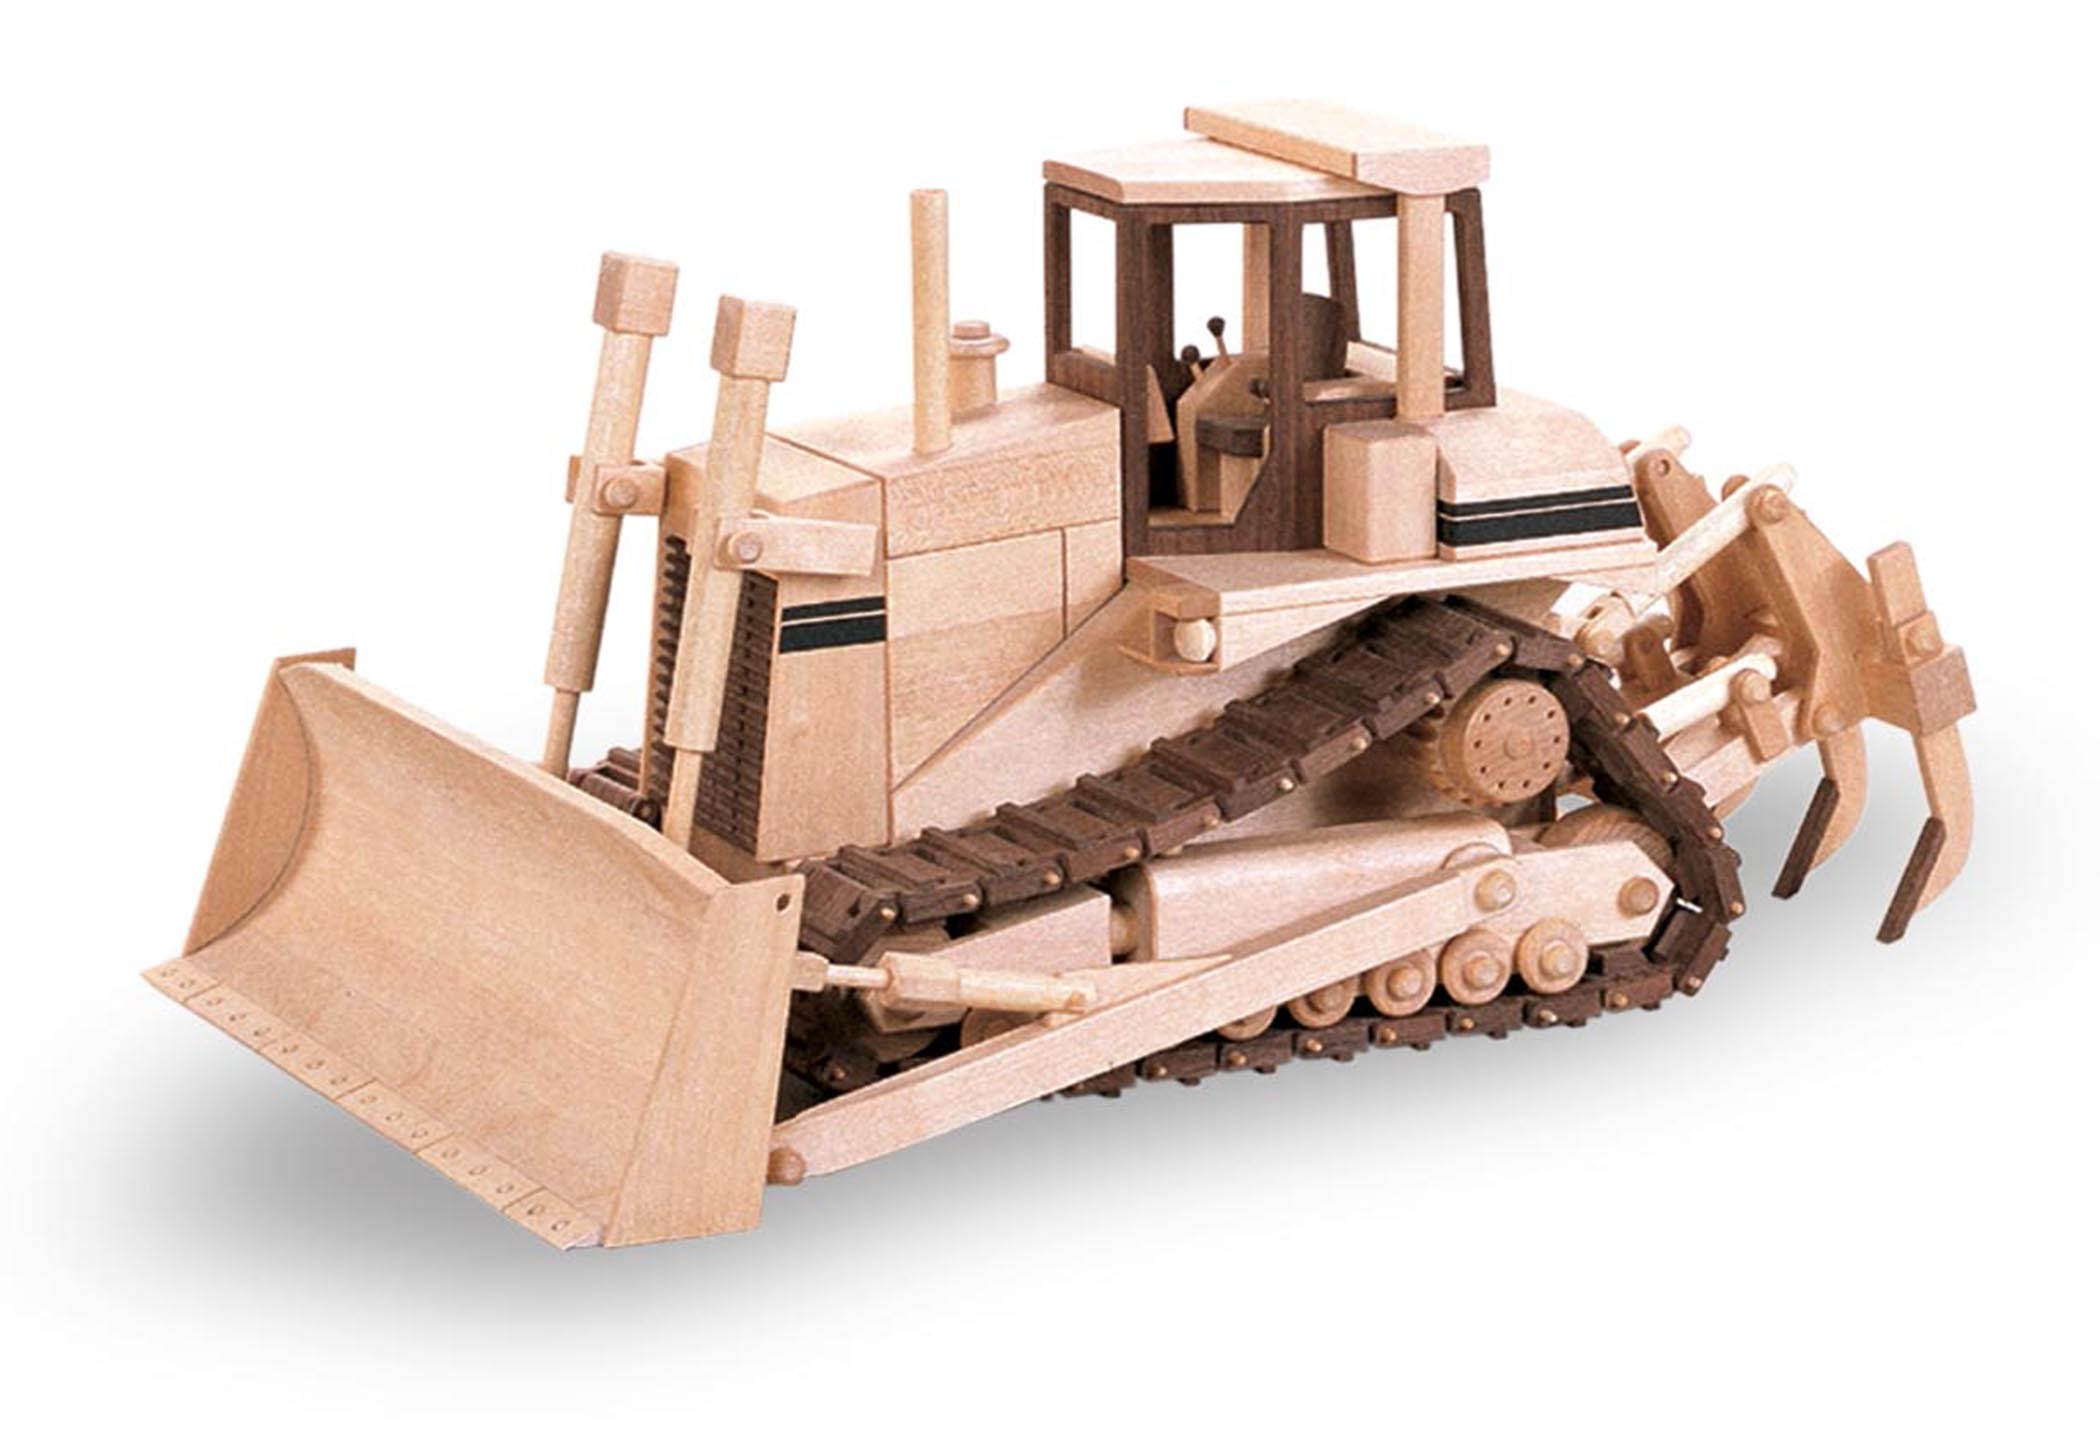 Toys Joys Wood Patterns : Plans for a wooden toy truck quick woodworking projects